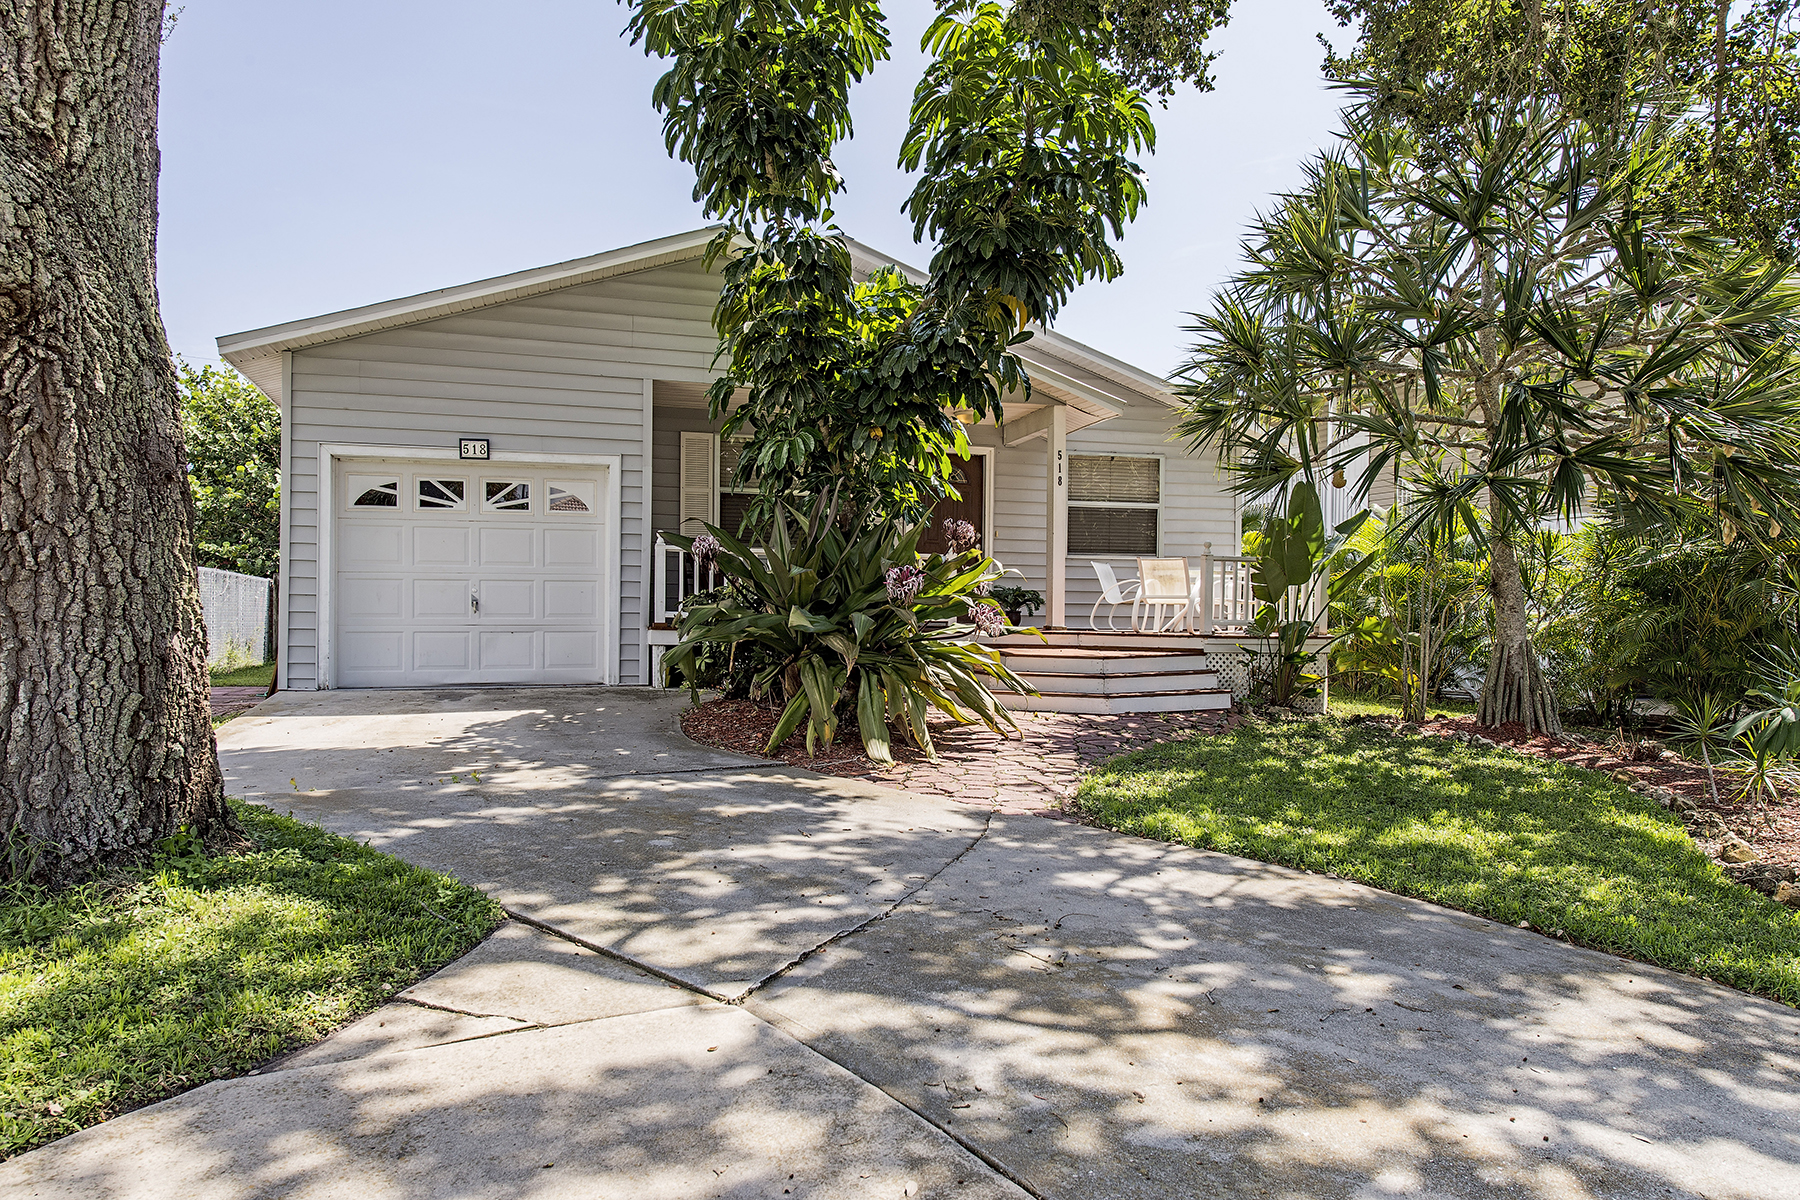 Single Family Home for Sale at NAPLES PARK - 96TH AVE N 518 96th Ave N Naples, Florida 34108 United States